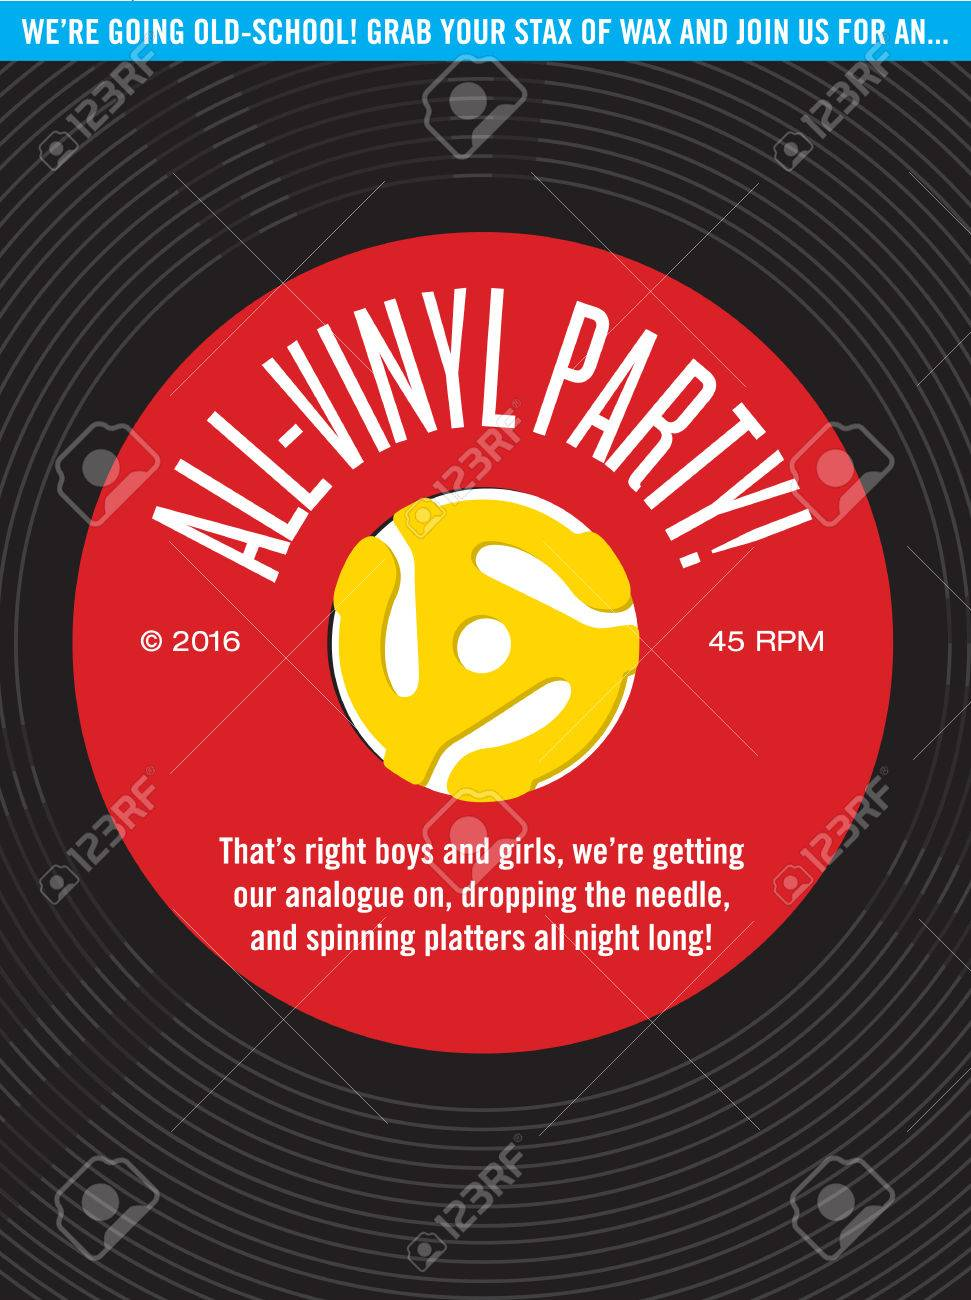 All Vinyl Record Party Invitation Vector Design Featuring 45